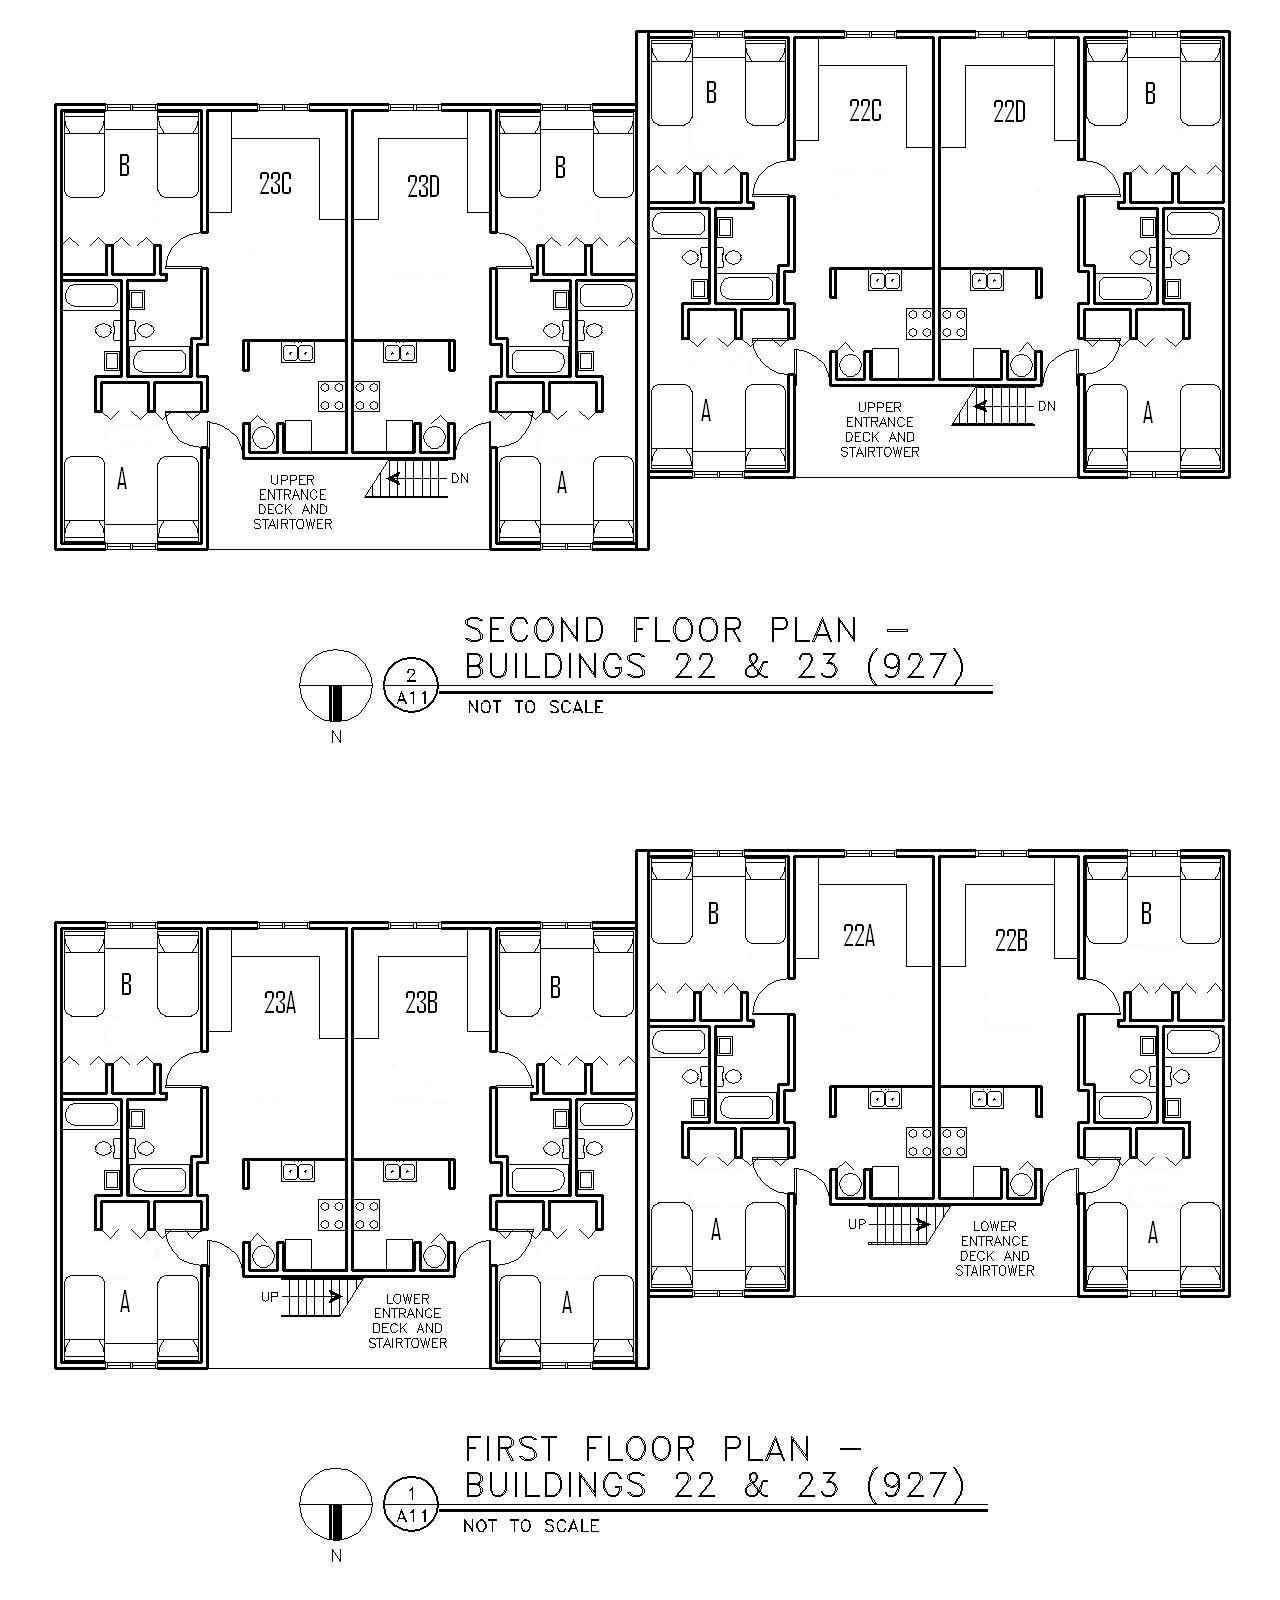 Floor Plan for Buildings 22 & 23